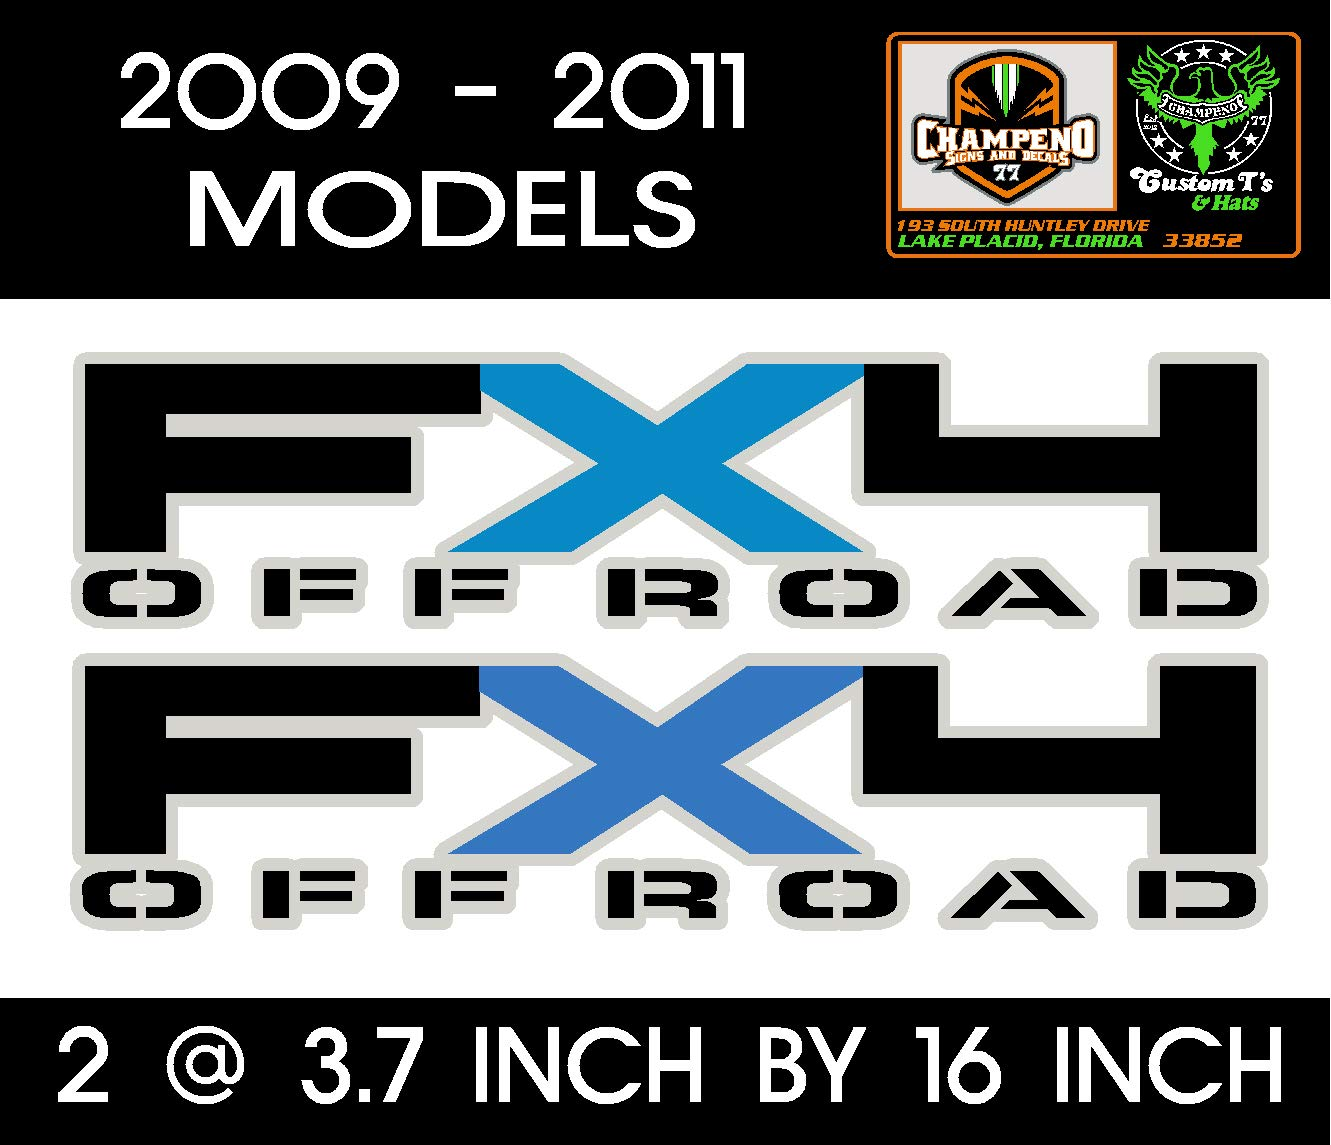 Decal 6 to 8 Year Outdoor Life Set of two Metallic Silver Sticker Graphic 2011-2012 FX4 Off Road Ford F-150 F-250 Truck Bed Side Black and Medium Blue 2009-2010 F-350